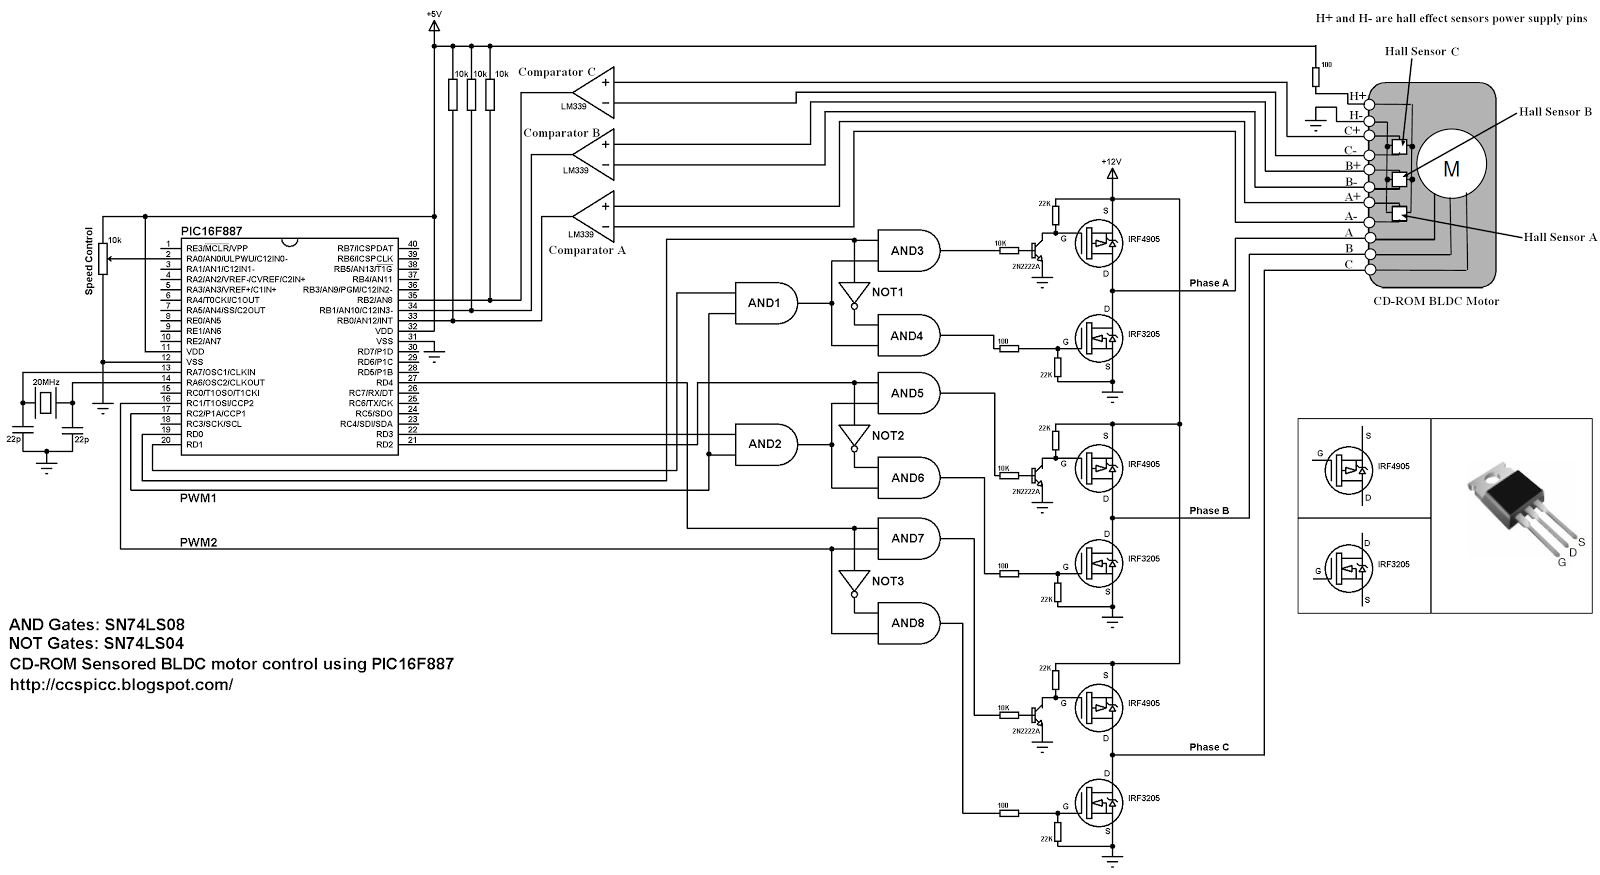 use this circuit to control a cdrom sensored three phase bldc motor